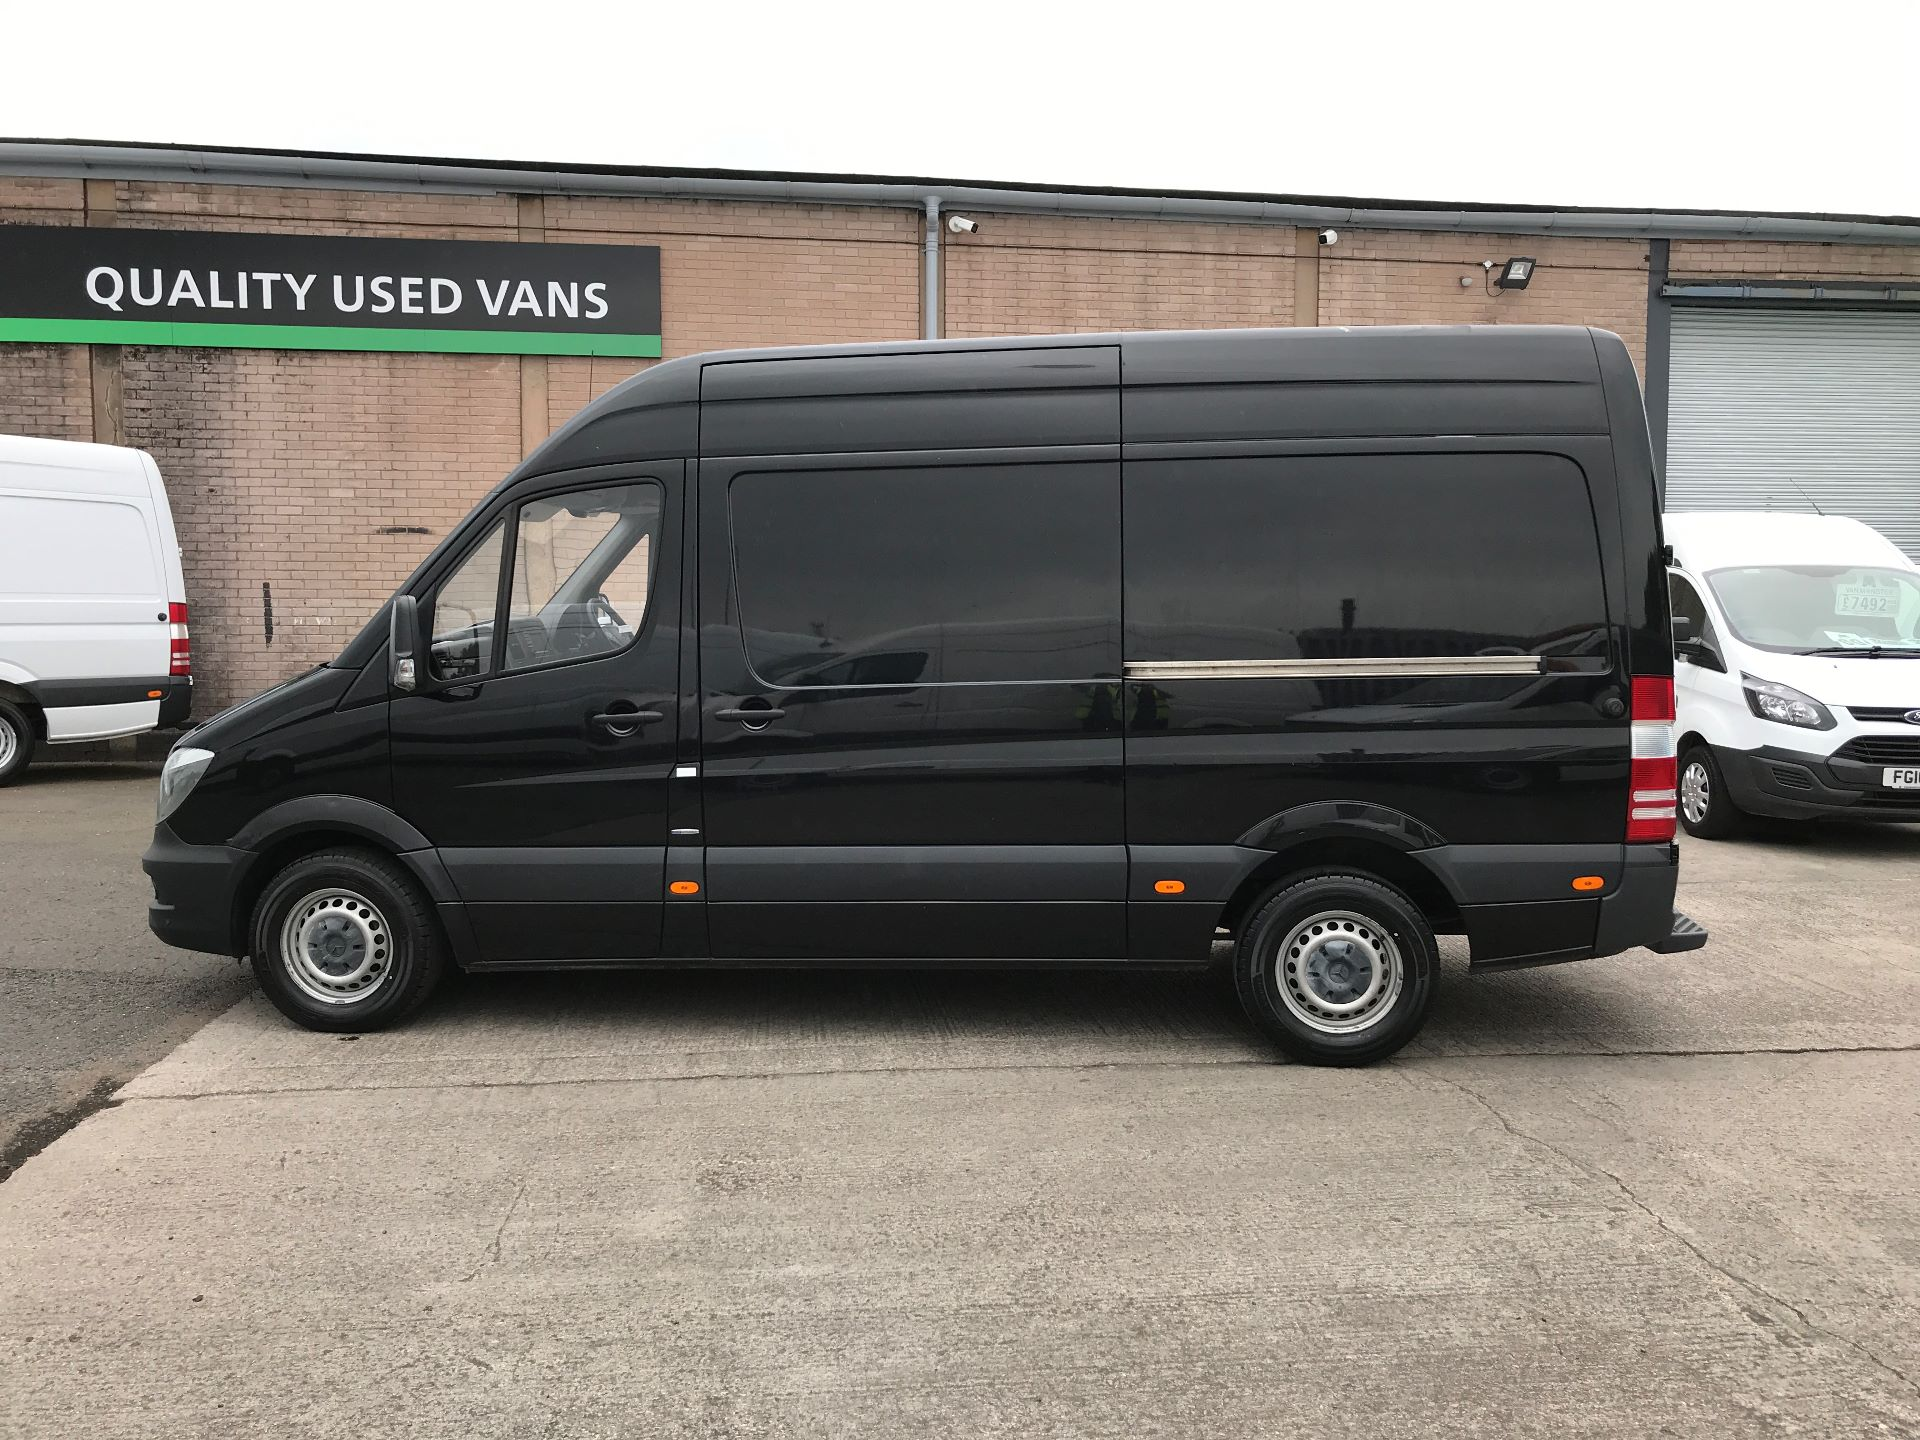 2017 Mercedes-Benz Sprinter 314CDI MWB HIGH ROOF 140PS EURO 6 AIR CON (KN17NXE) Image 11